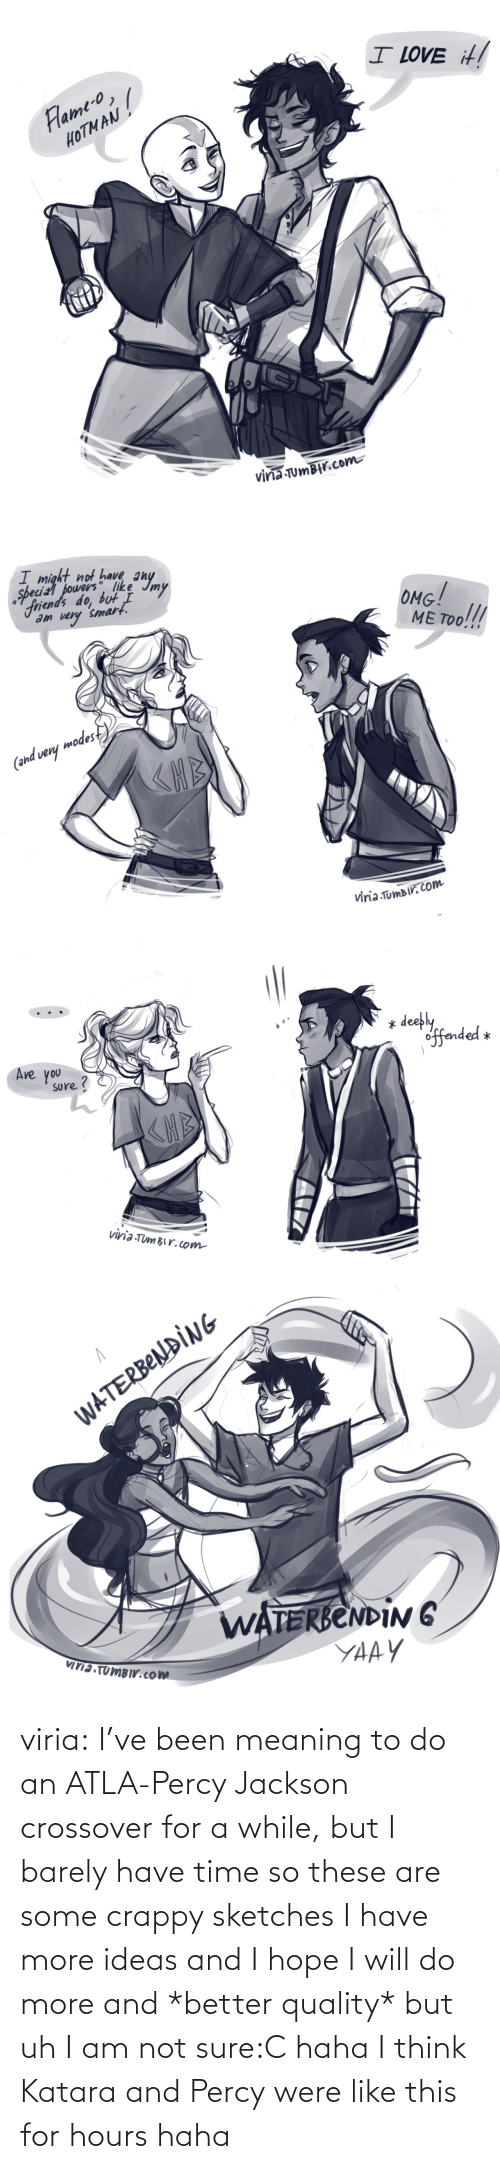 Meaning: viria:  I've been meaning to do an ATLA-Percy Jackson crossover for a while, but I barely have time so these are some crappy sketches I have more ideas and I hope I will do more and *better quality* but uh I am not sure:C haha I think Katara and Percy were like this for hours haha